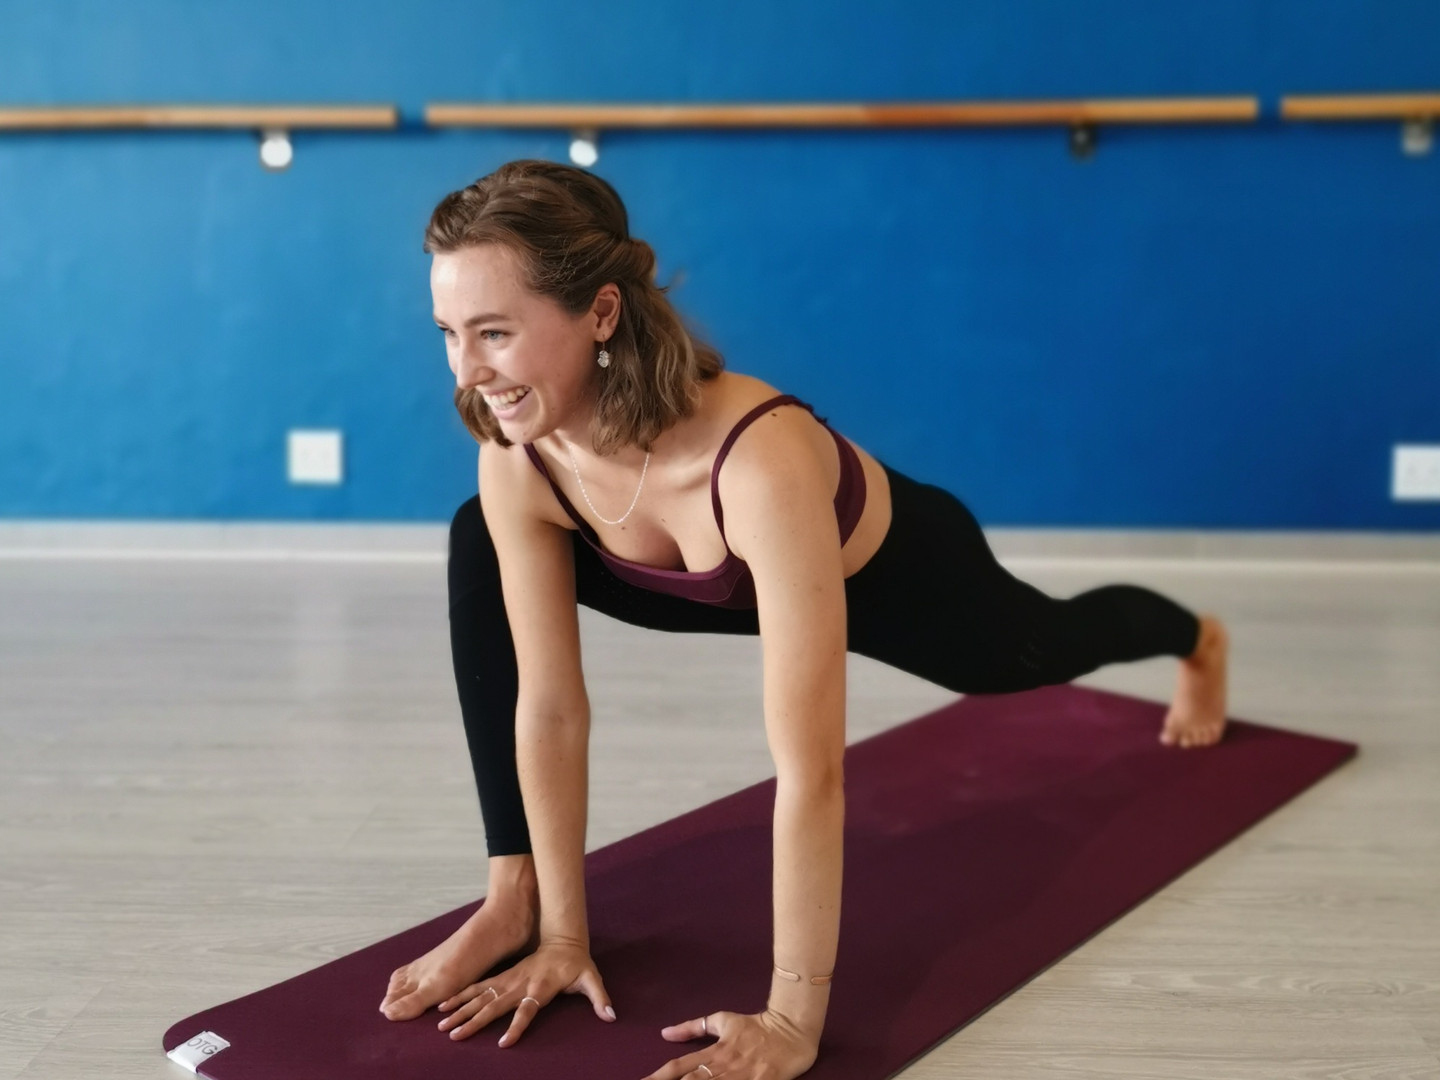 Barre and Pilates instructor, Hannah